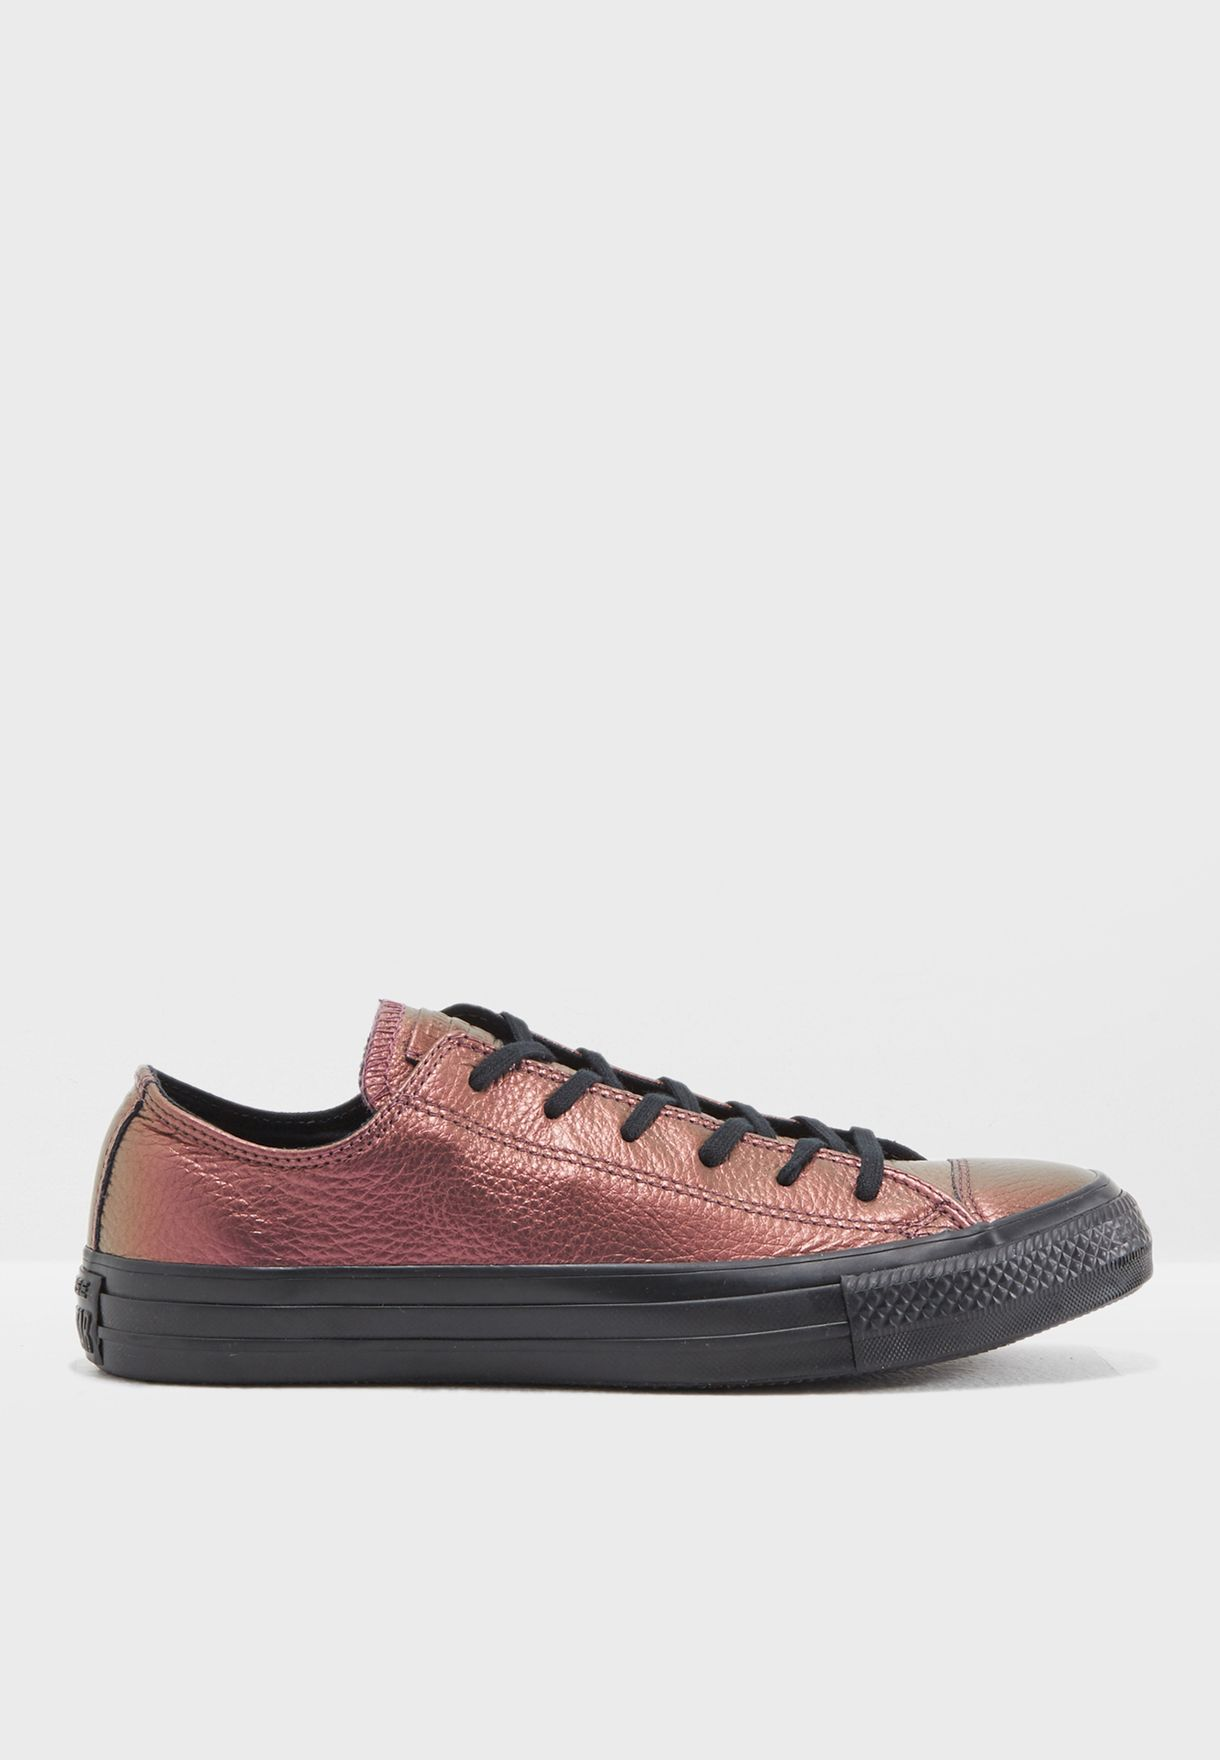 dd00ccc1ccdfef Shop Converse purple Chuck Taylor All Star Iridescent Leather ...